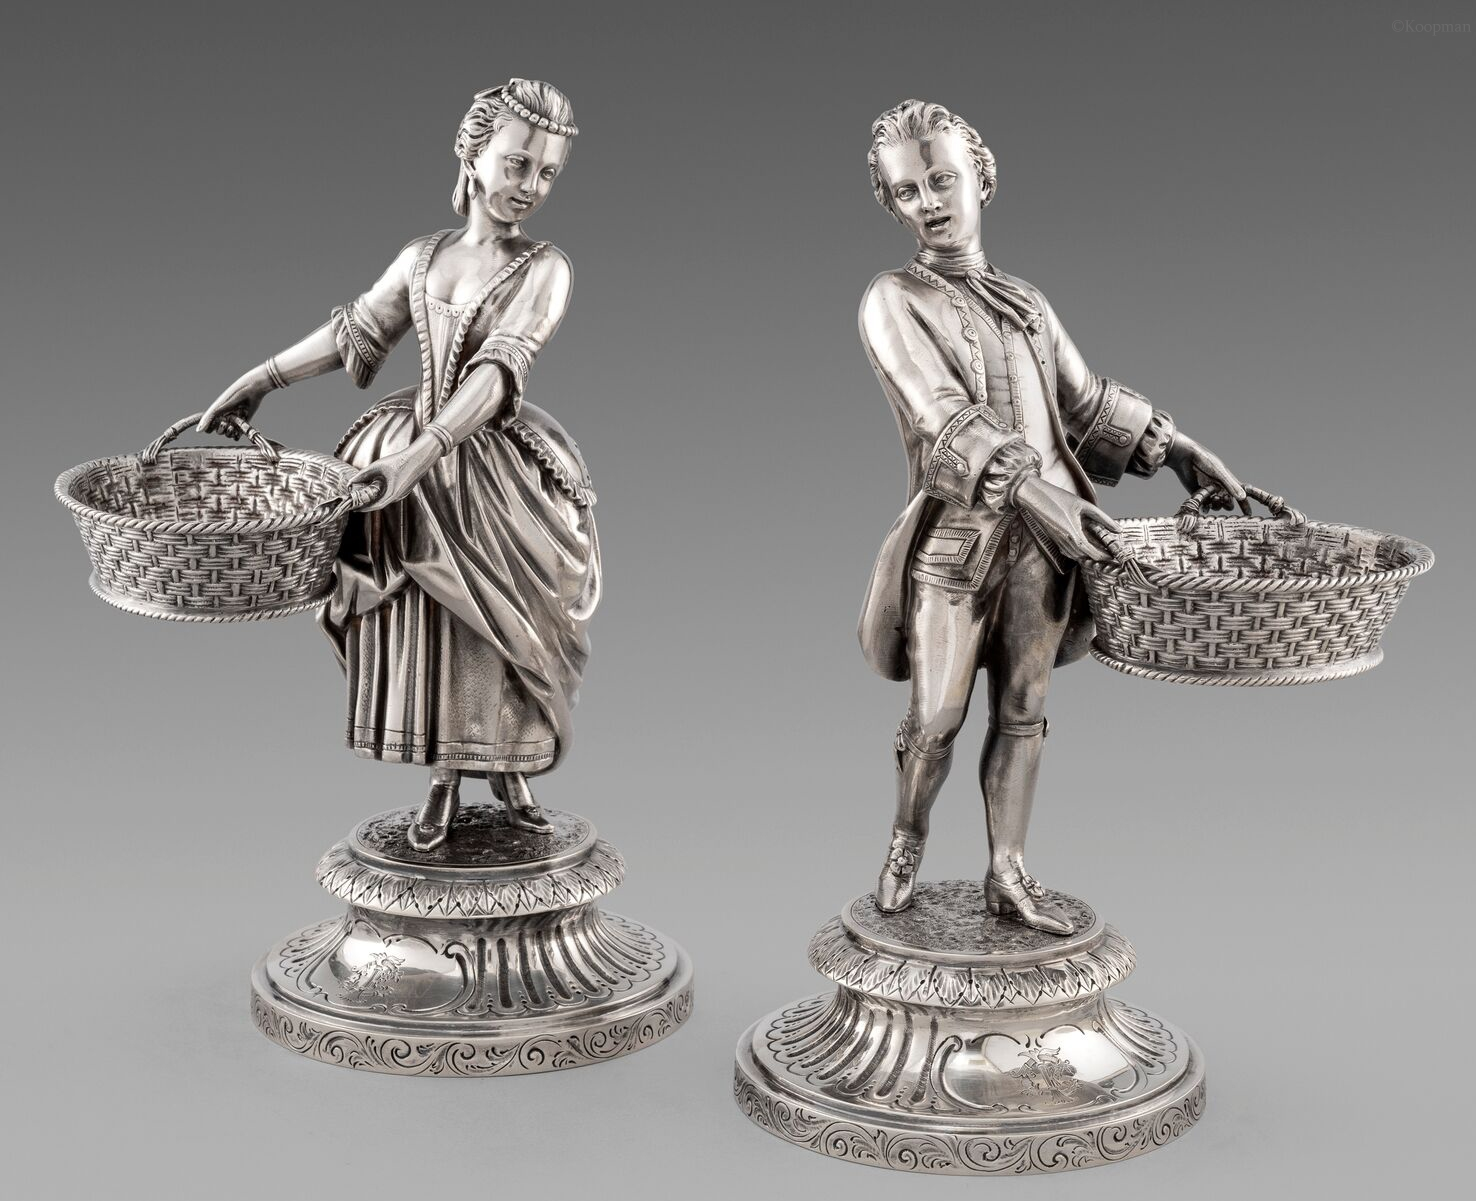 A Pair of Large Figural Salt Cellars in 18th Century Costume